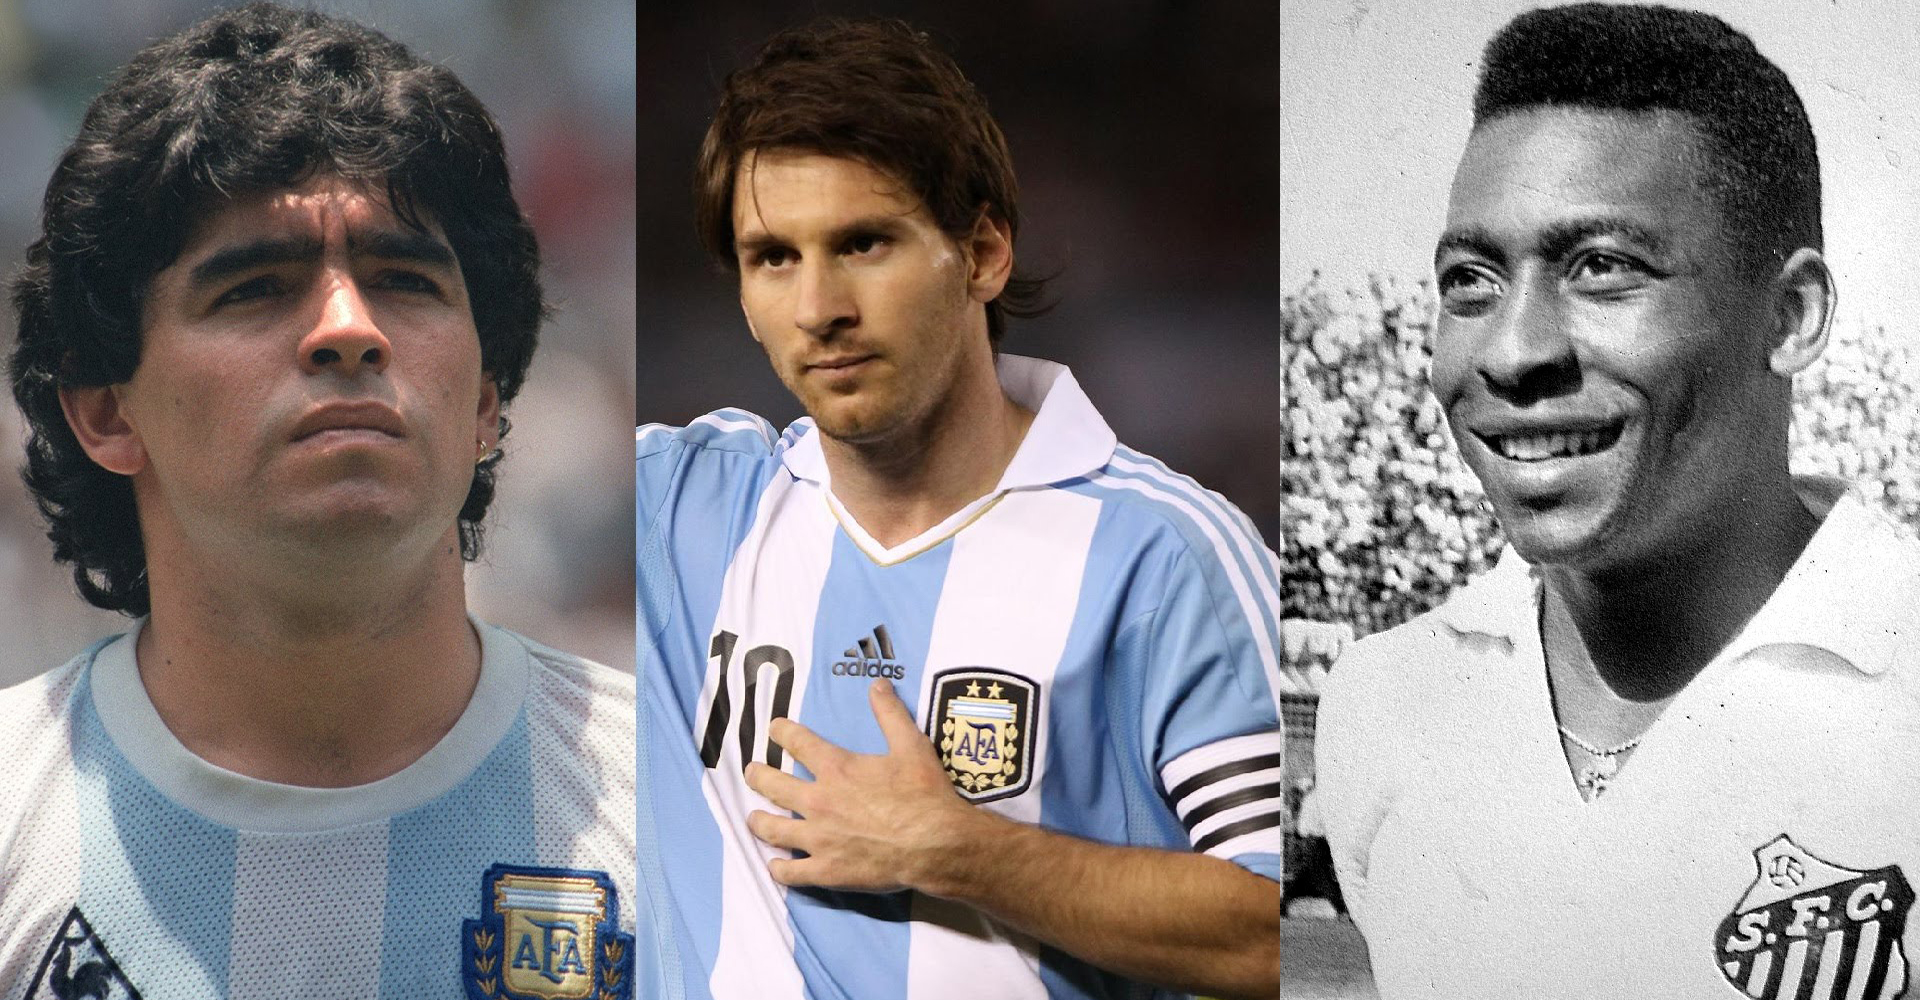 Lionel Messi, Diego Maradona and Pele, Known As The 3 GOATs